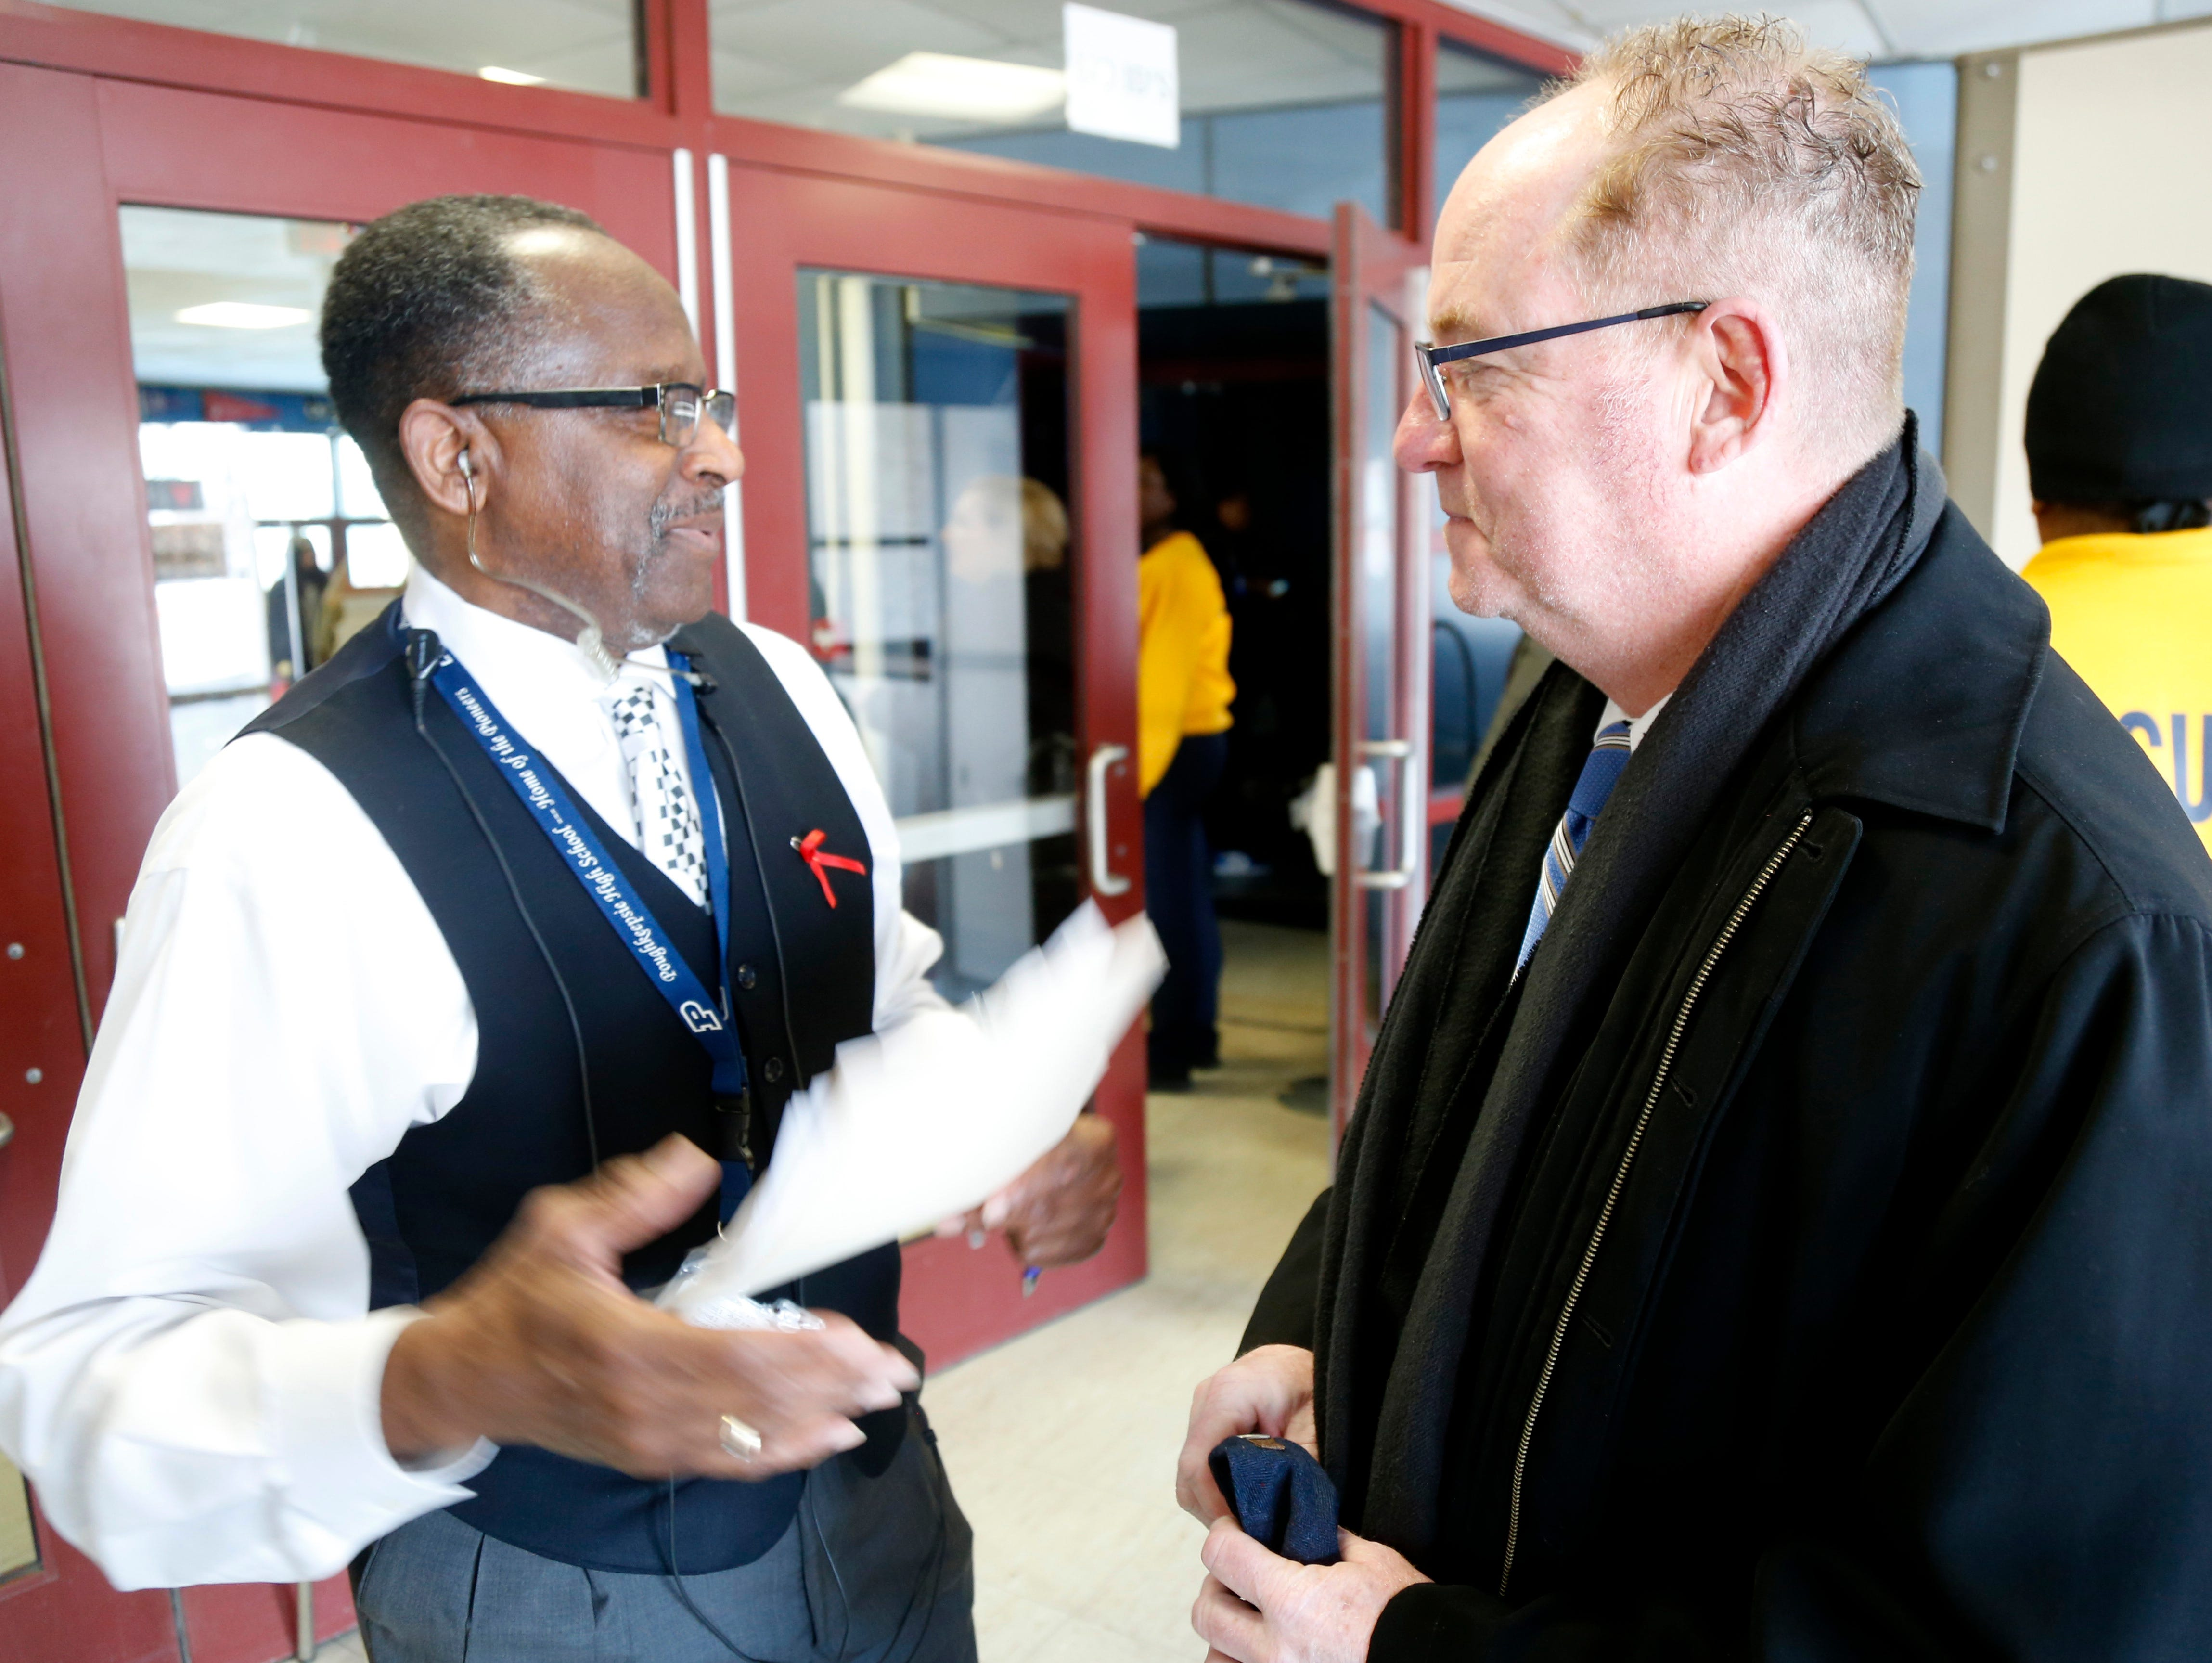 Prior to the start of Thursday's Martin Luther King Celebration at Poughkeepsie High School, principal Ronald Jackson talks with Mayor Rob Rolison on February 14, 2019.